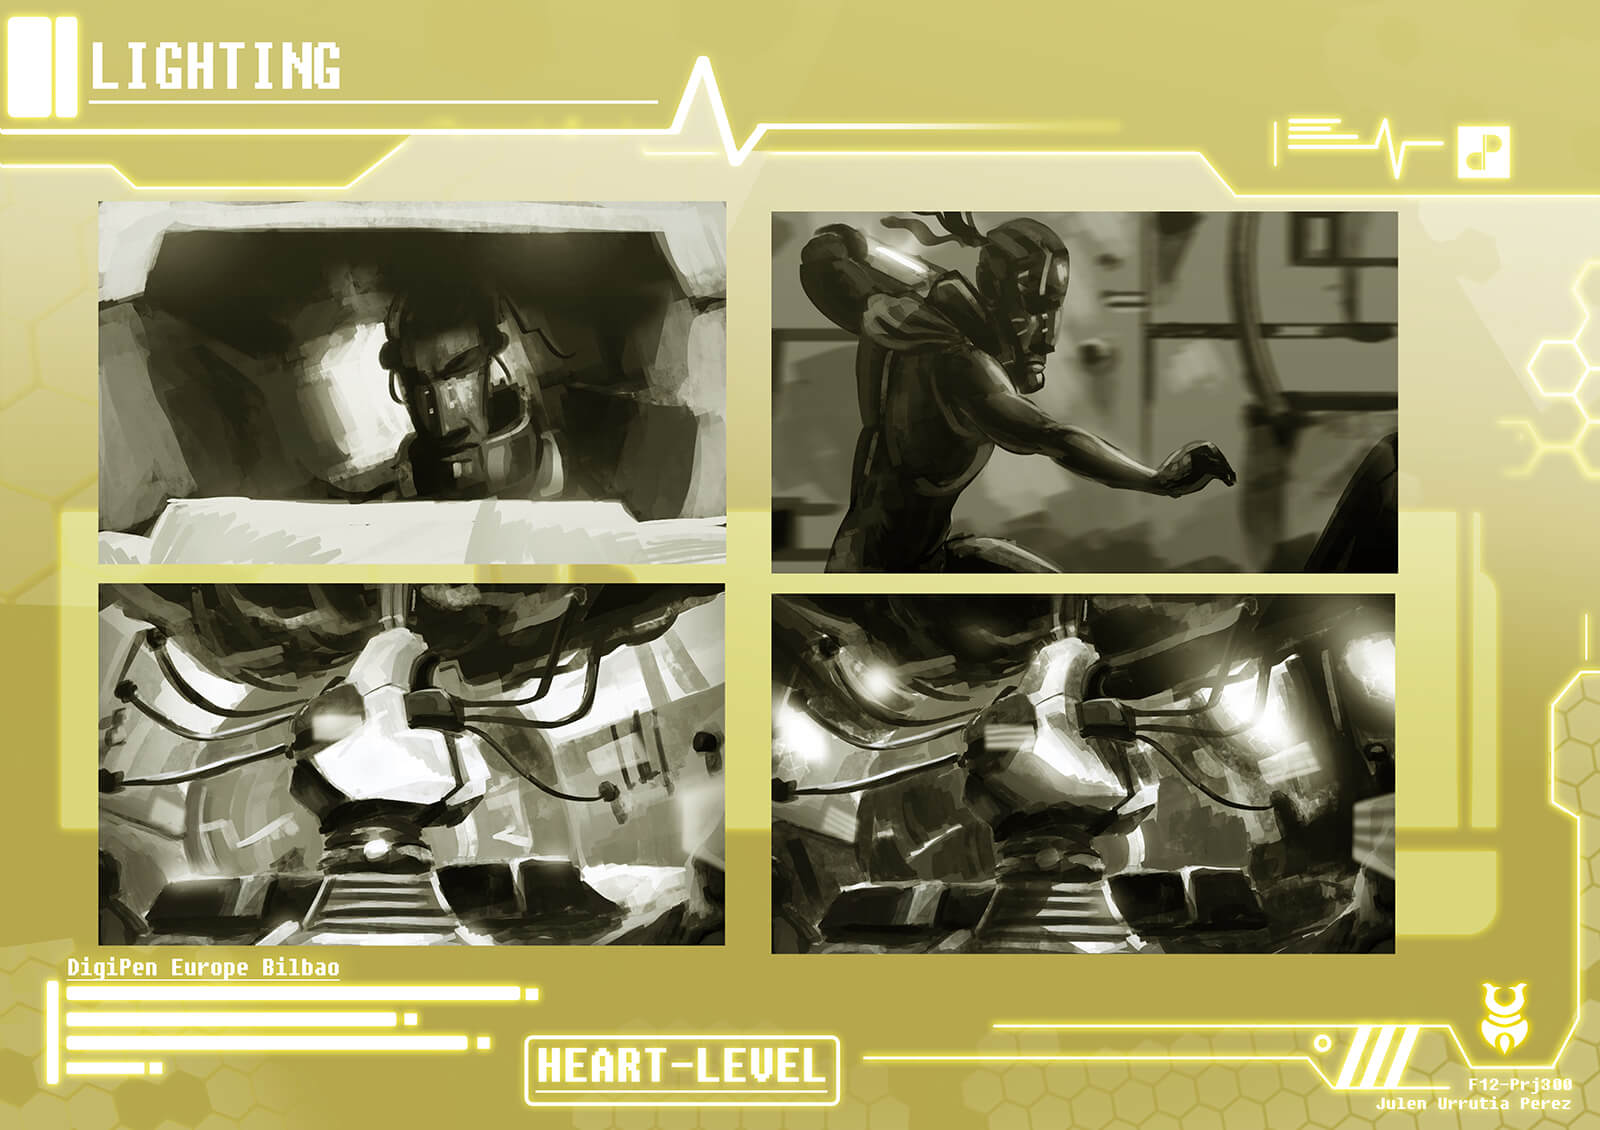 Black-and-white drawings detailing lighting schemes of various scenes in the film Heart Level